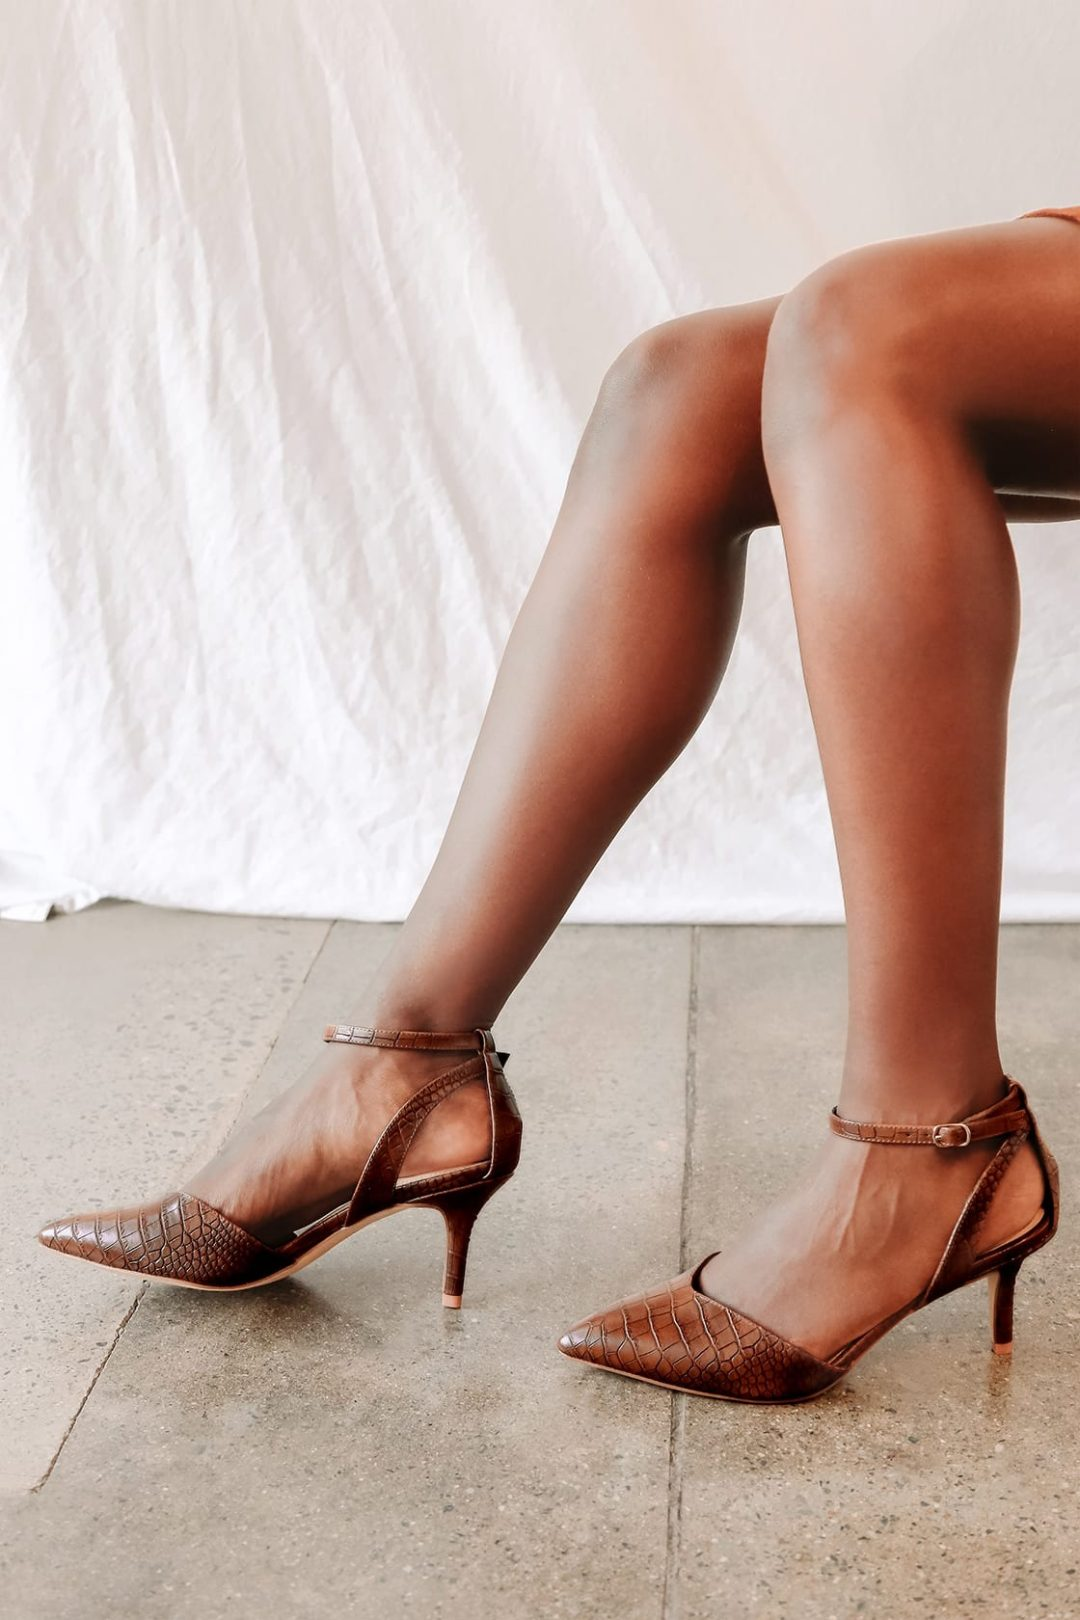 What color shoes to wear with a burgundy dress: Brown strappy sandals with heels